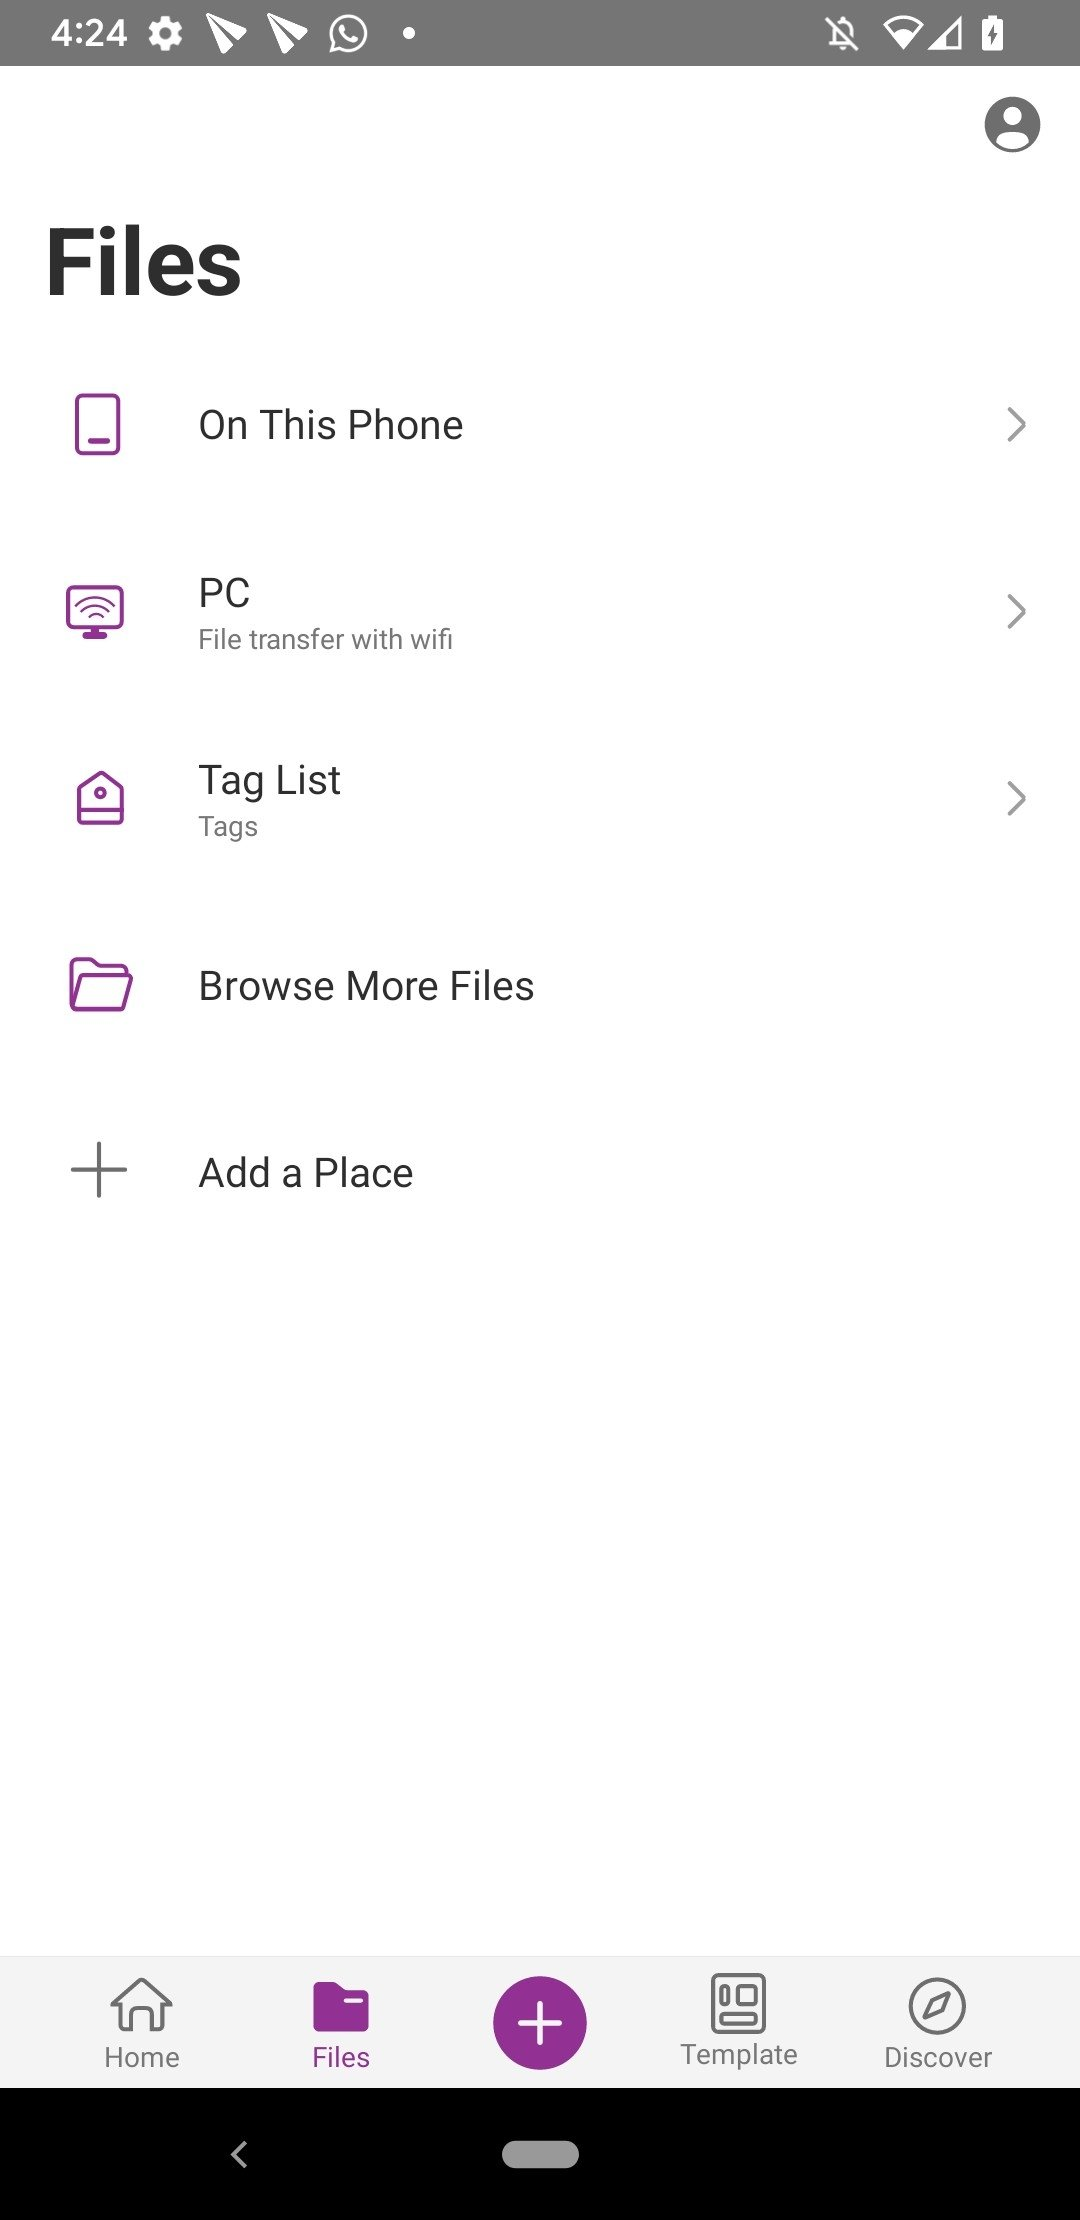 Foxit MobilePDF 6 3 0 0705 - Download for Android APK Free